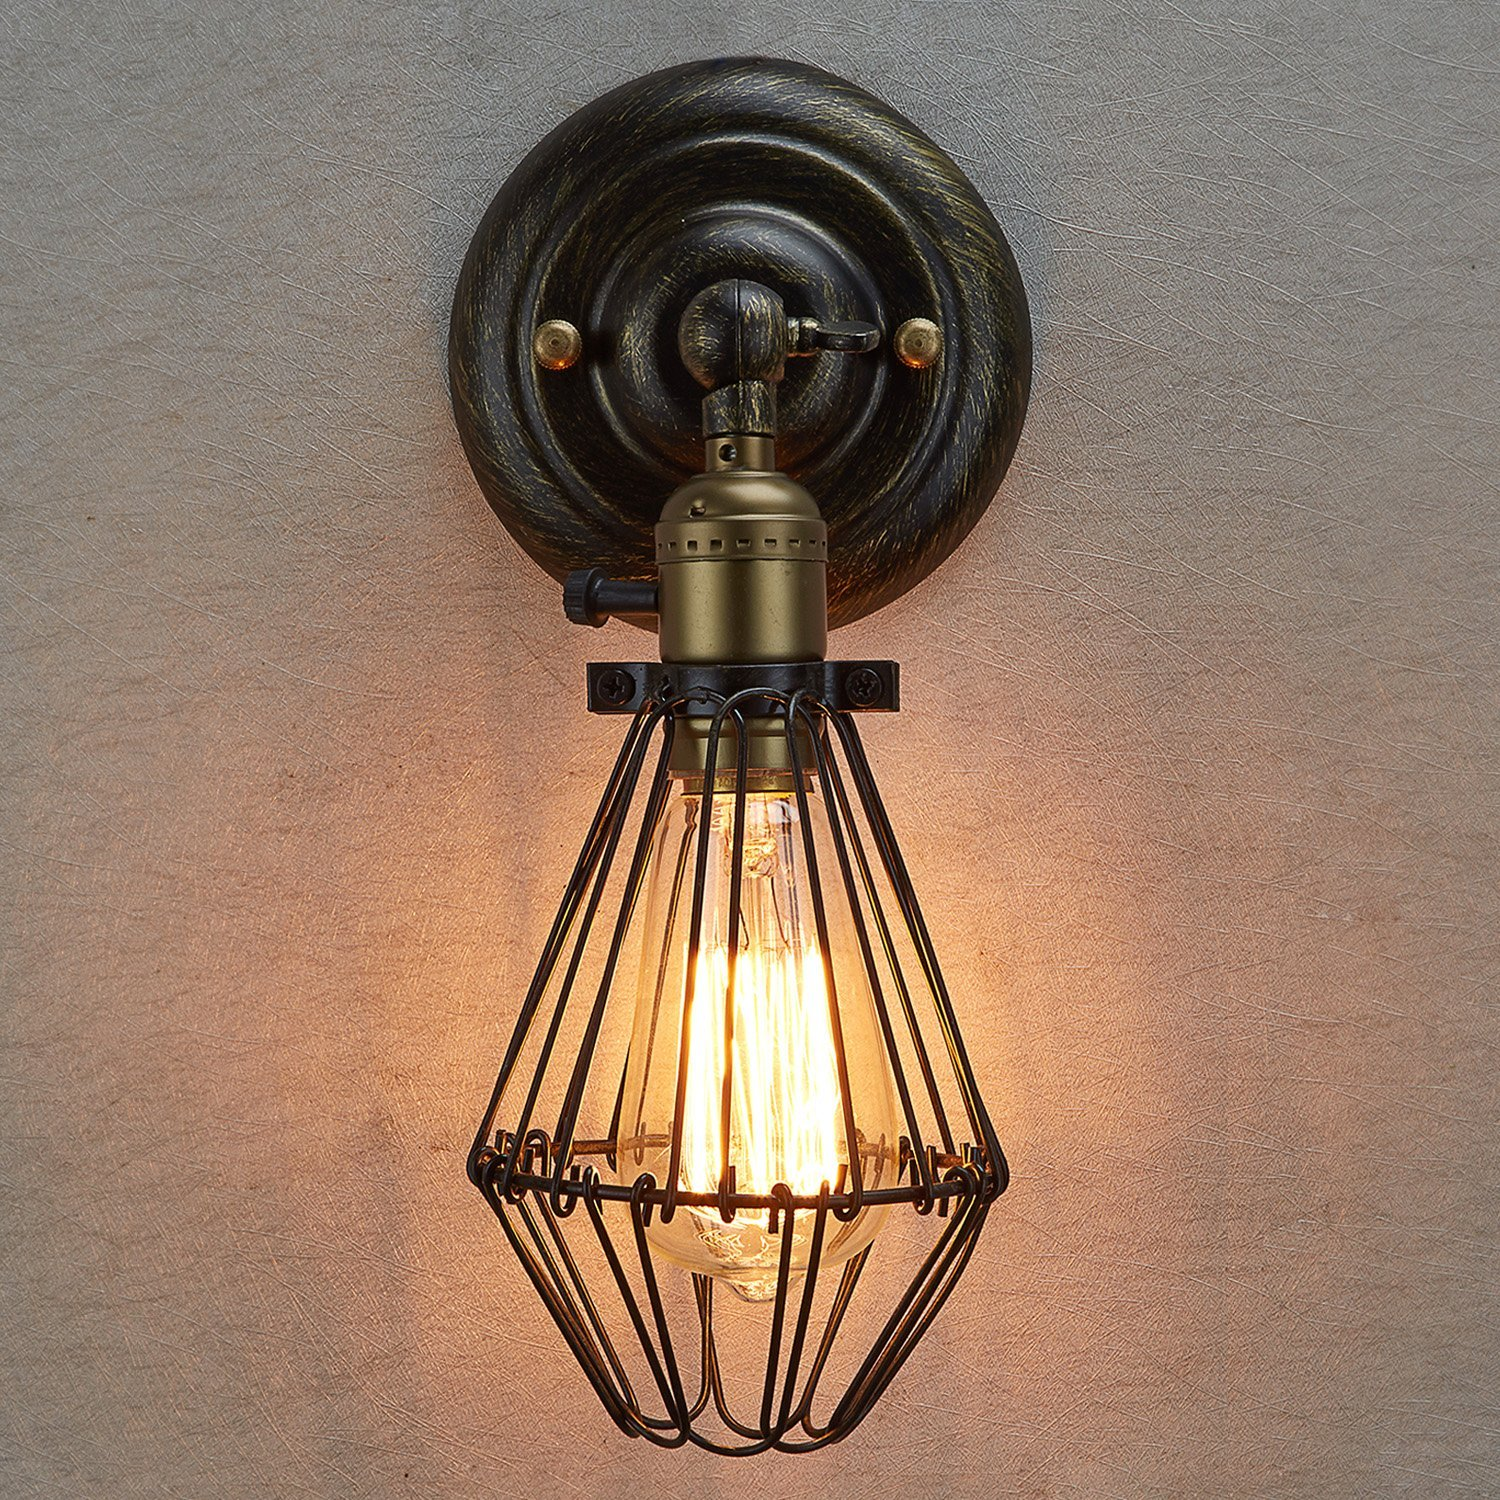 Special vintage style industrial edison ceiling lamp w bulb old - Ecopower Vintage Style Industrial Opening And Closing Light Wall Sconce Cage Lamp Guard 1